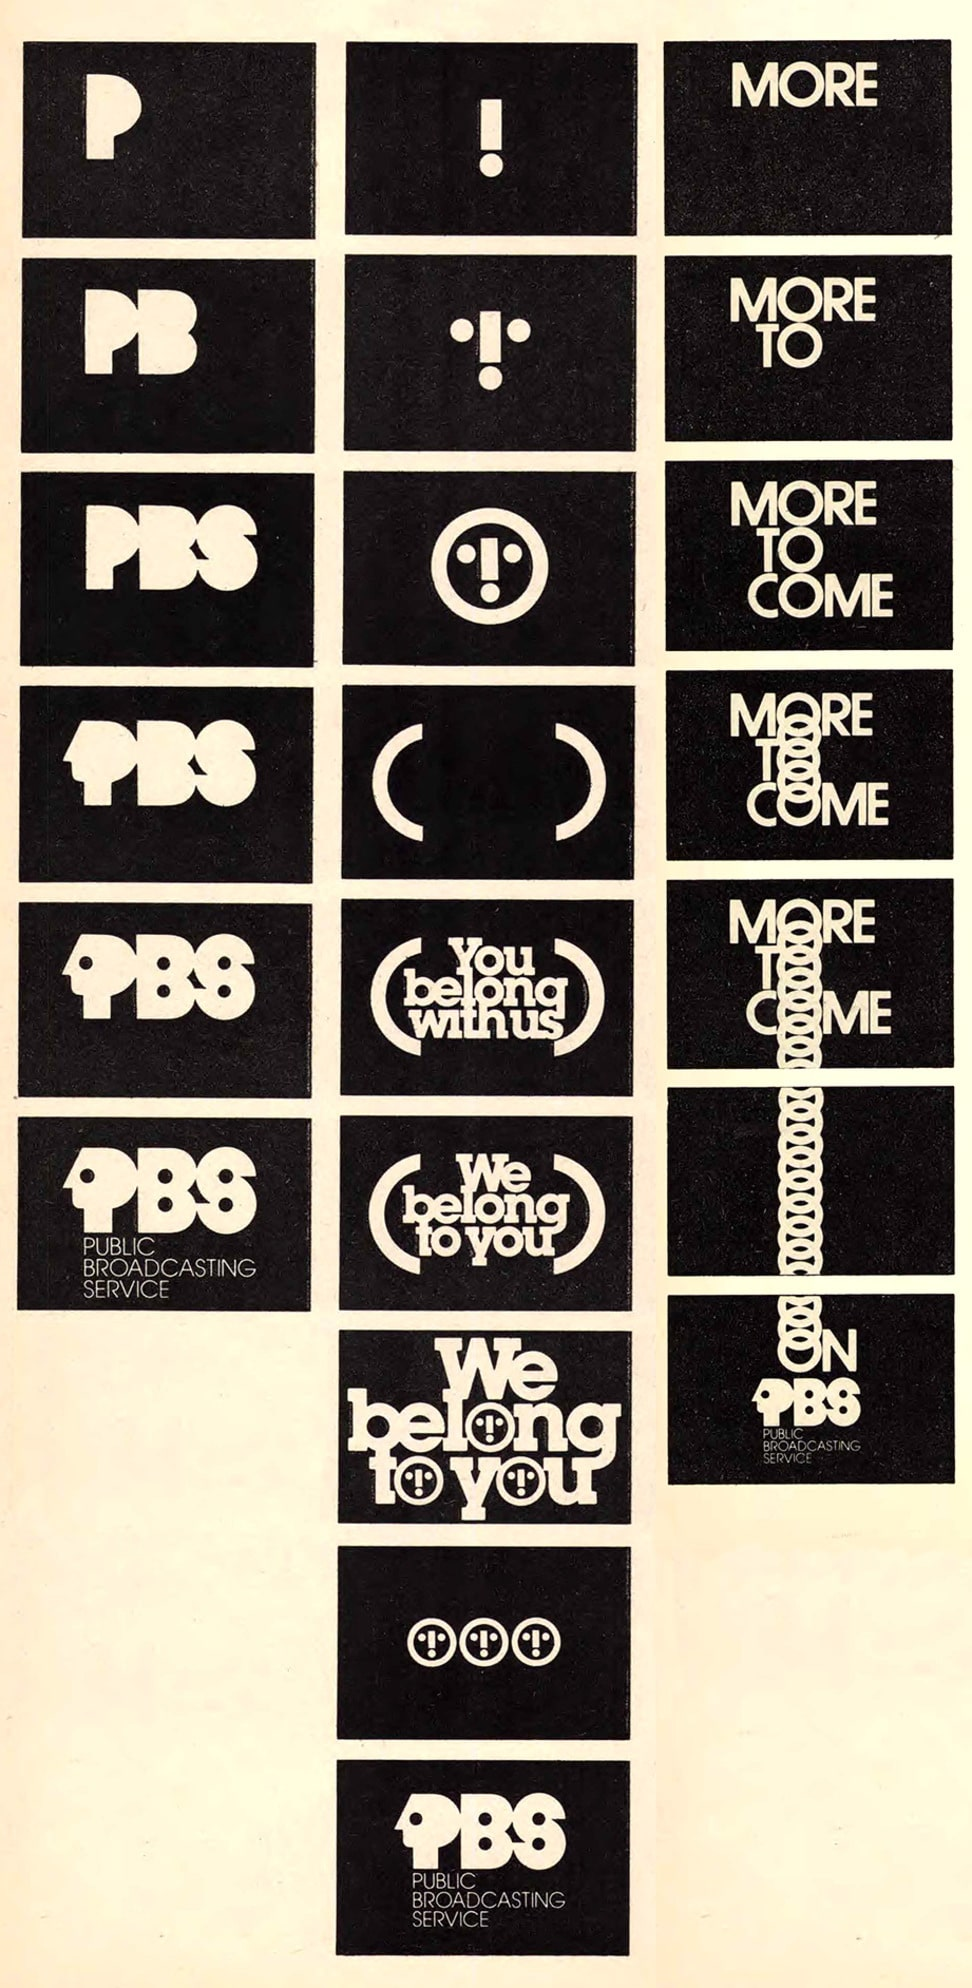 The Lost PBS Logo Animations by Lubalin, Smith, Carnase, Inc, and Animated by Edstan Studios